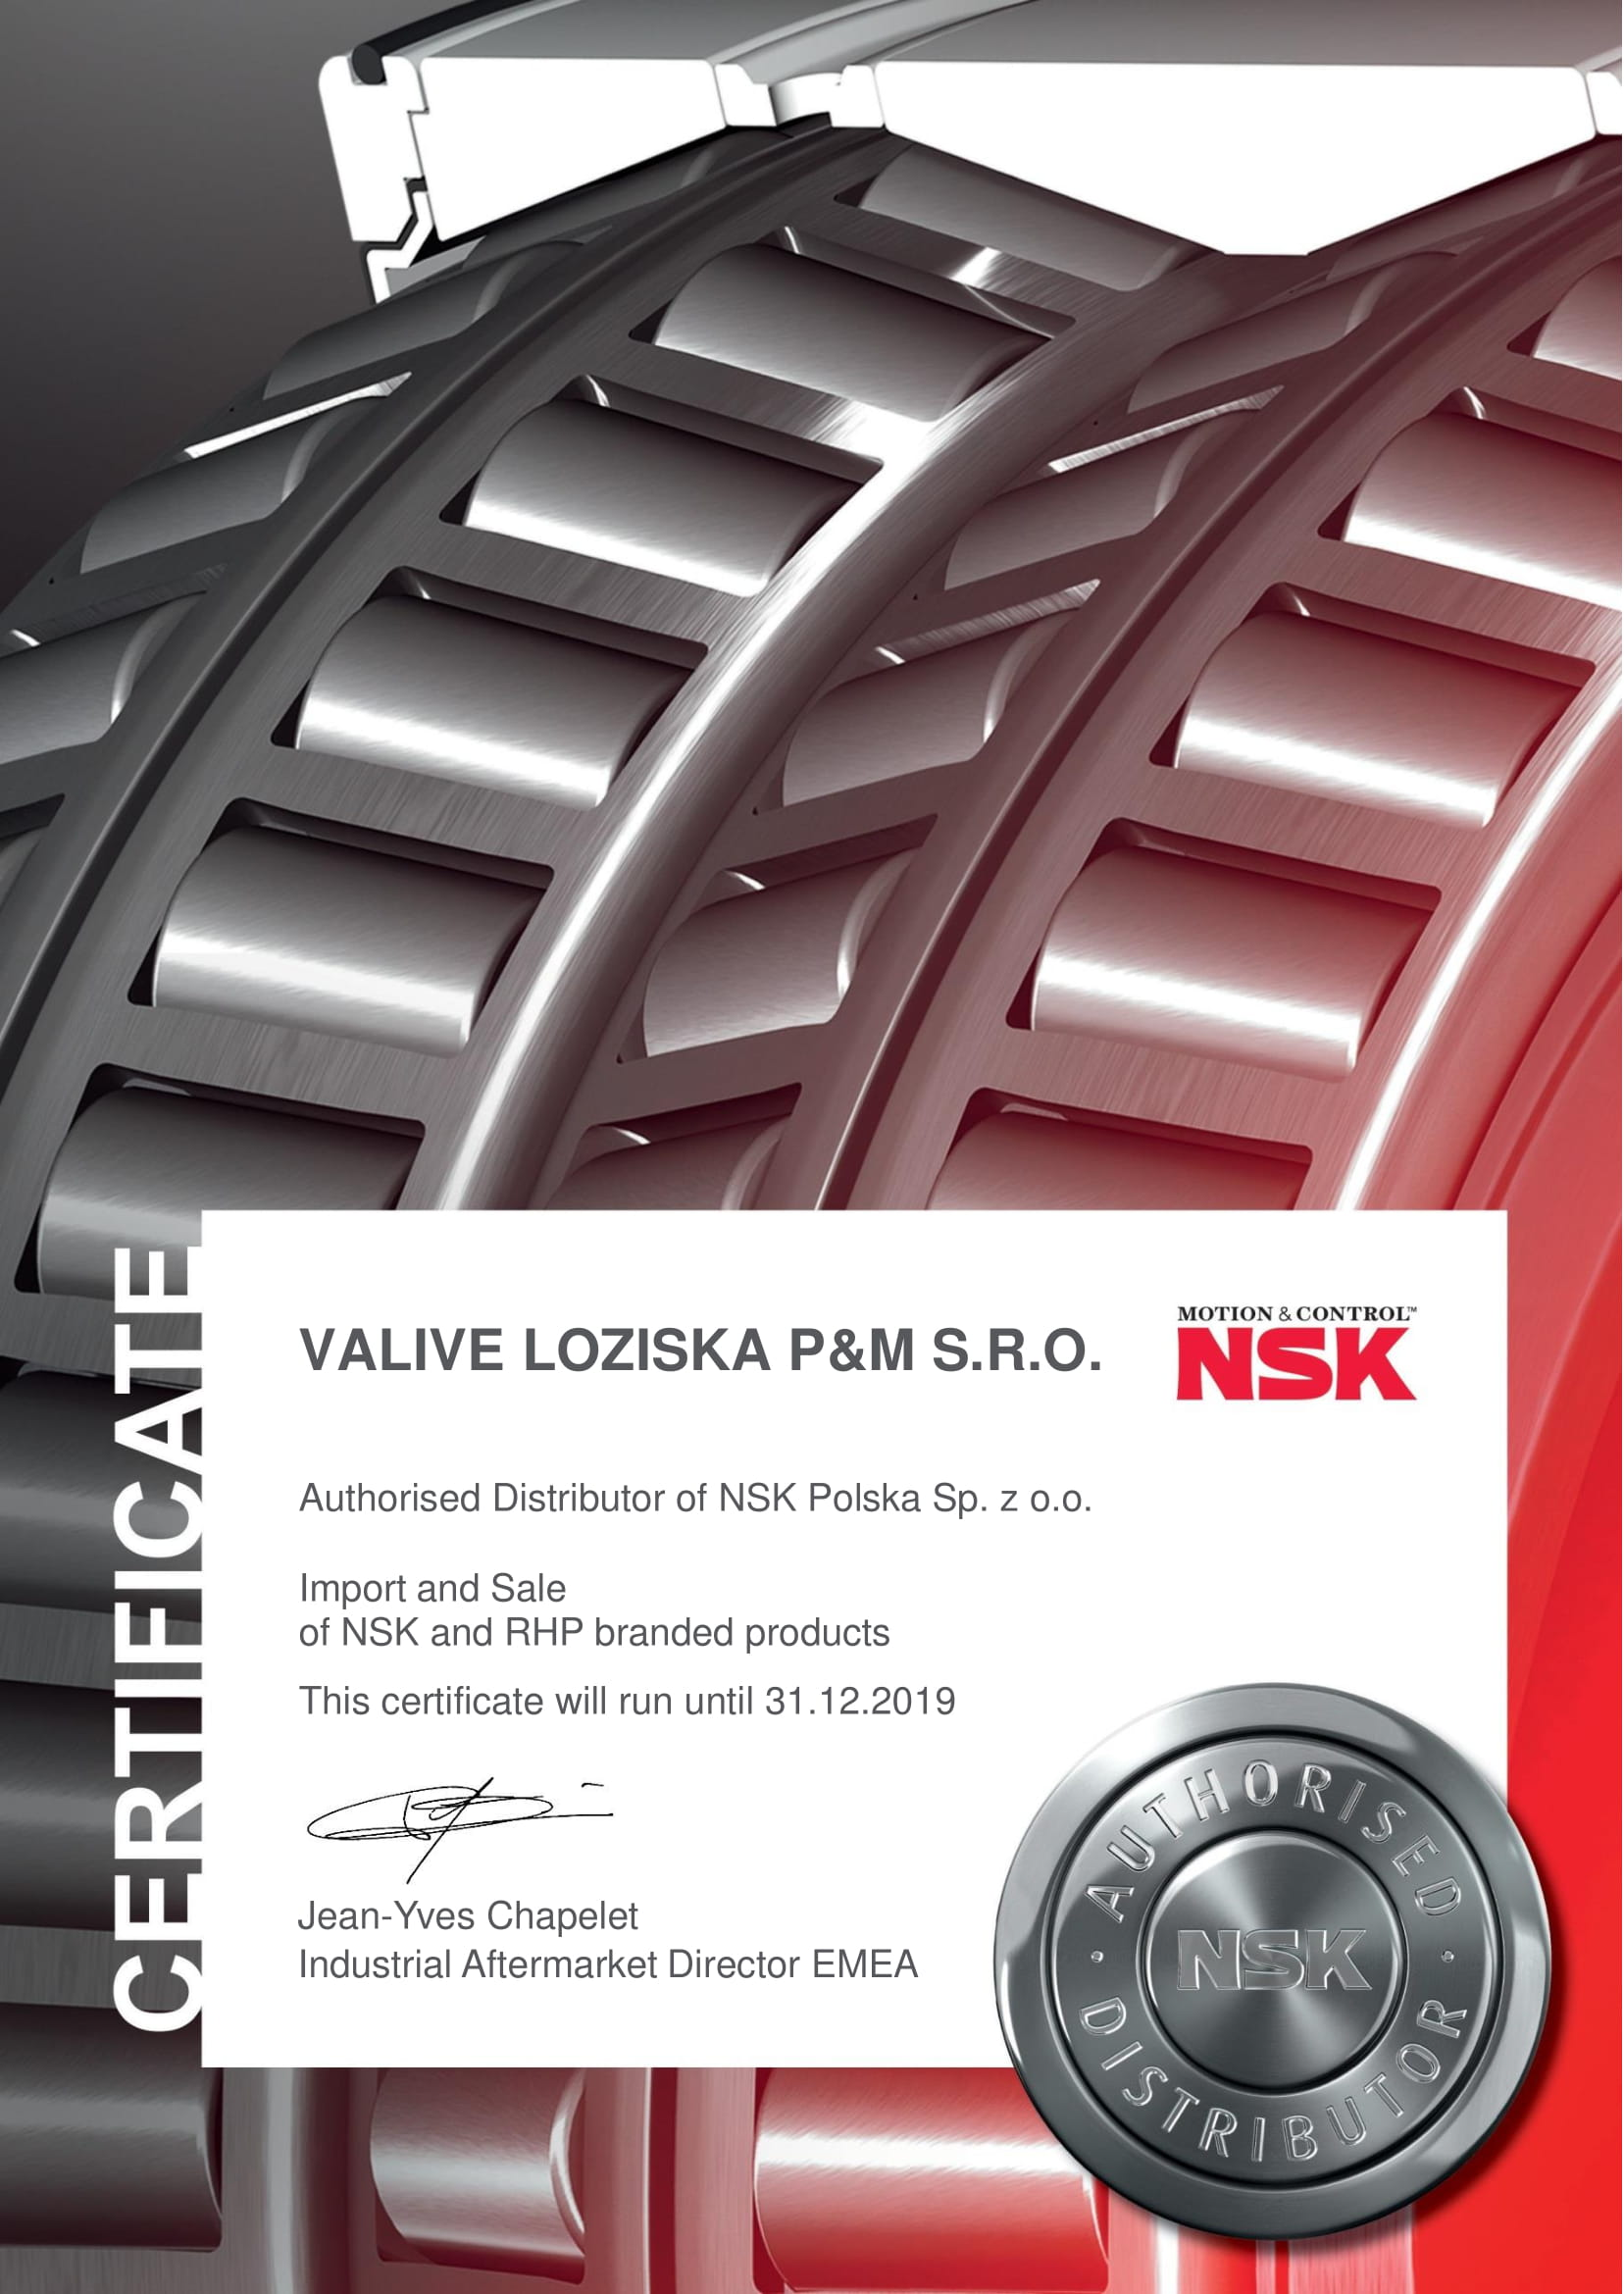 Certificate authorised distributor of NSK